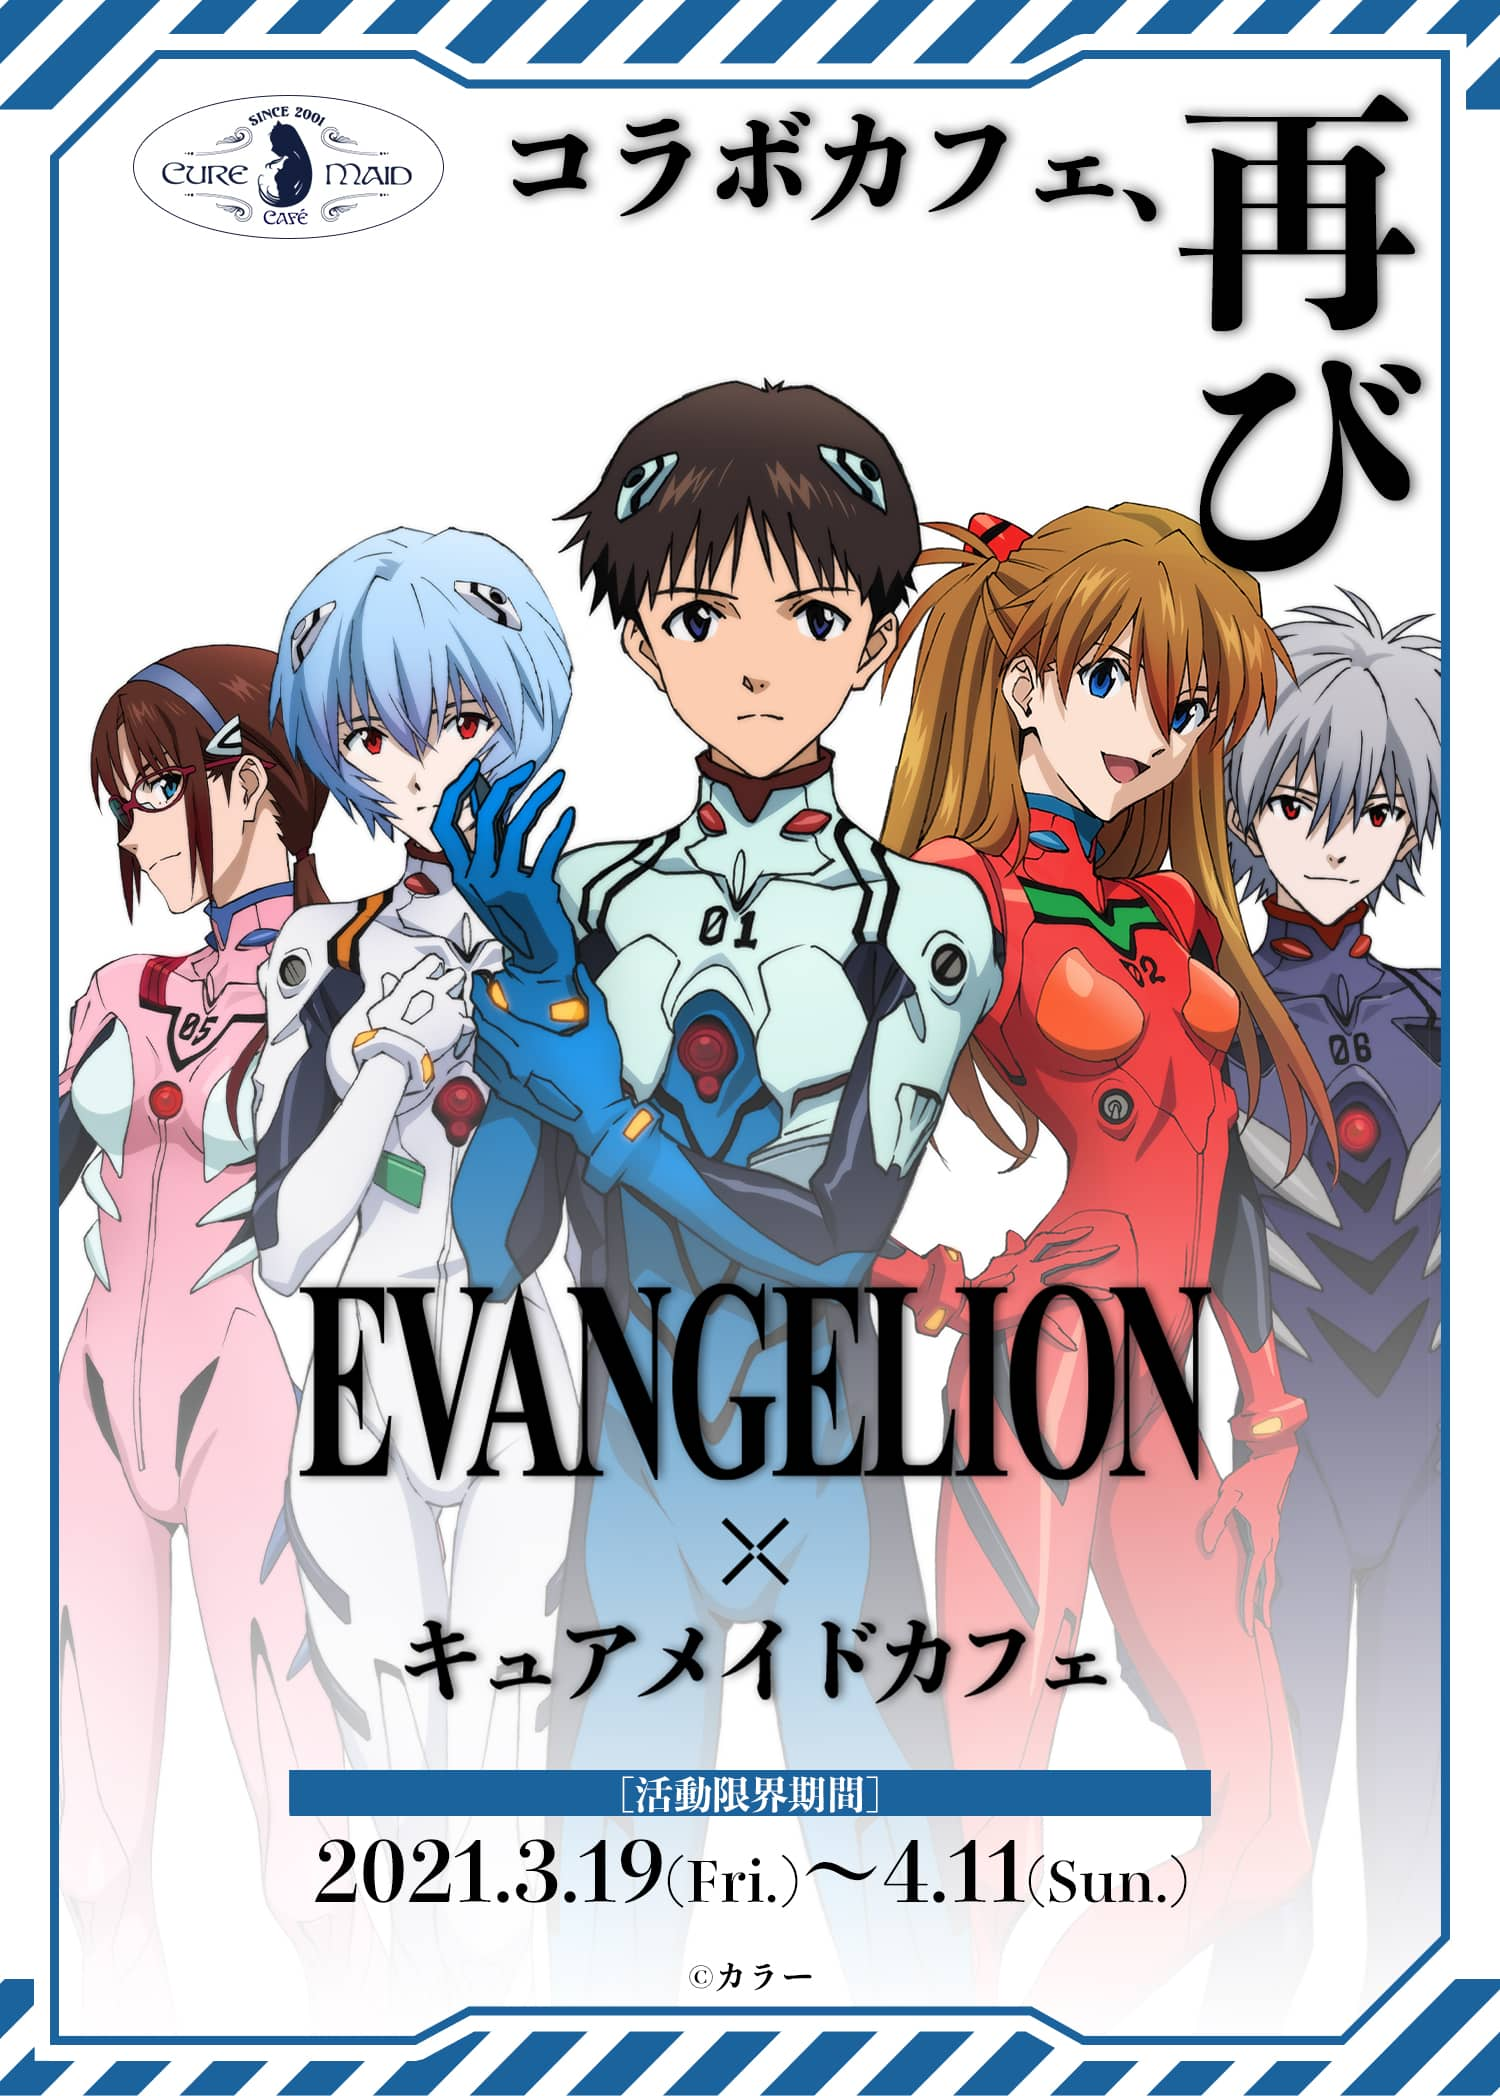 Evangelion x The Cure Maid Cafe